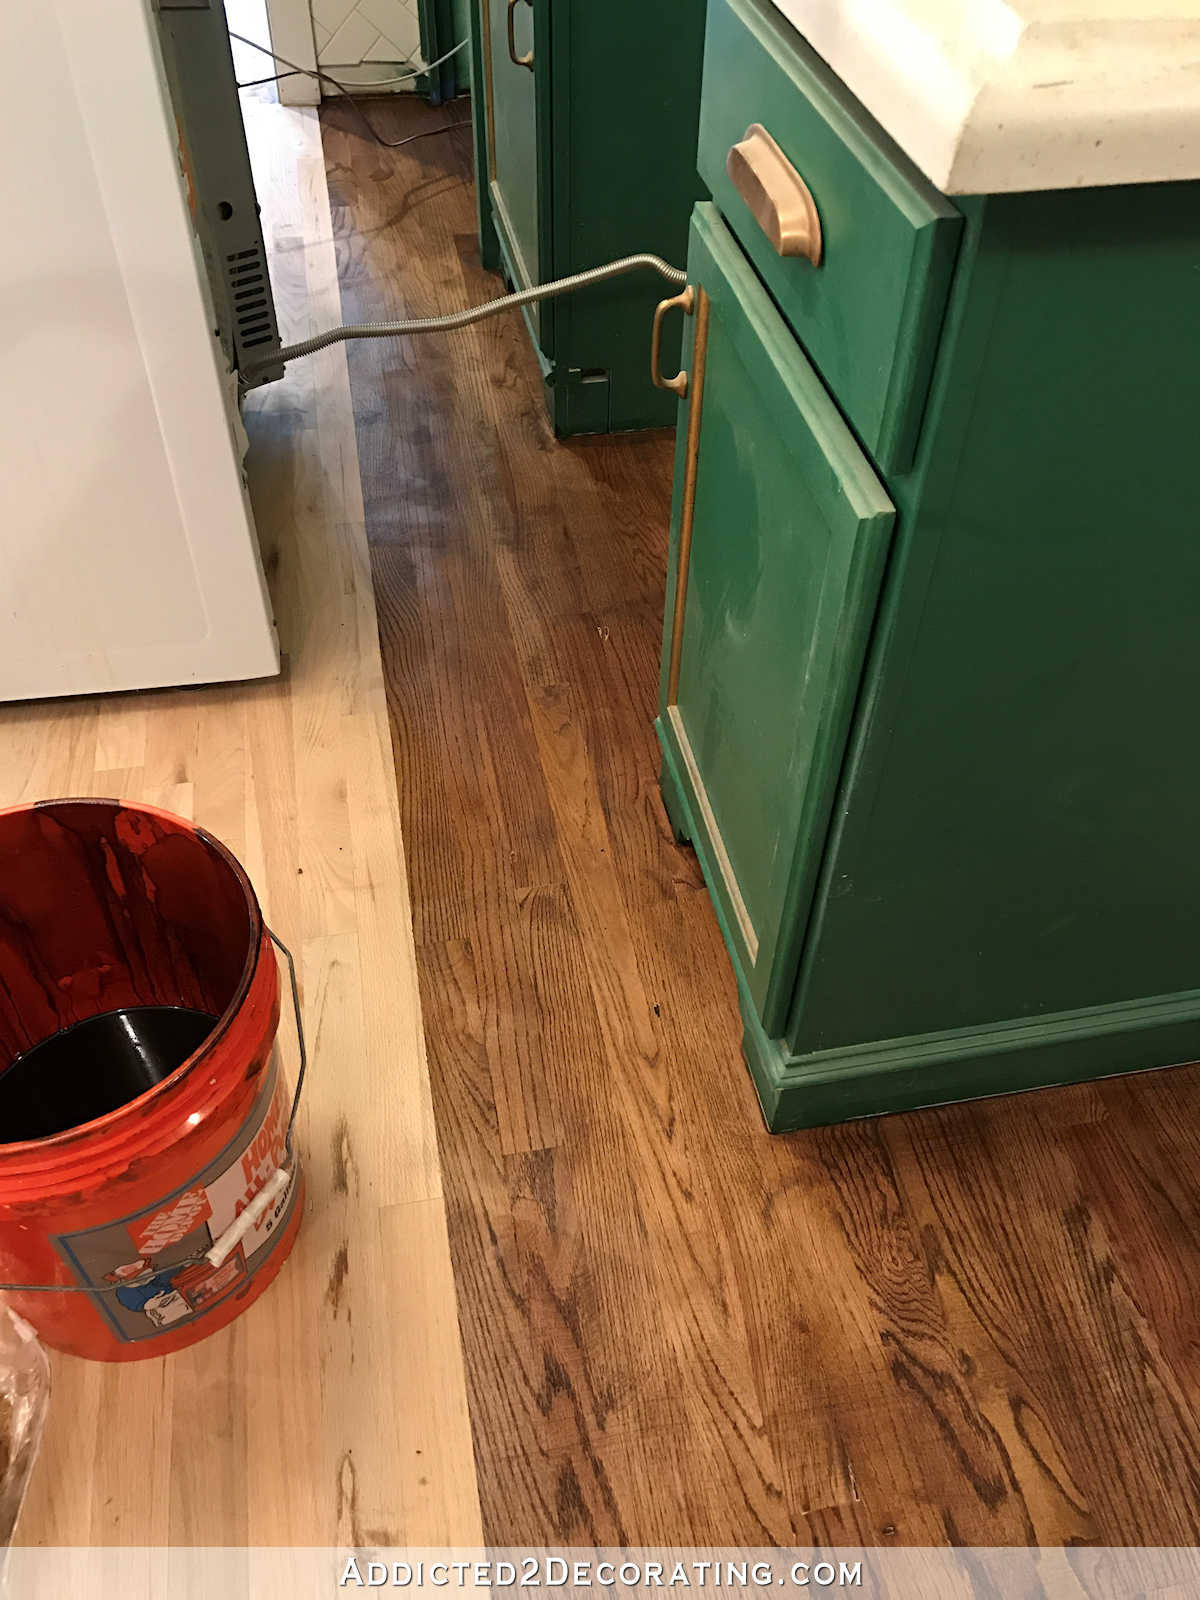 21 Recommended Trending Hardwood Floor Colors 2017 2021 free download trending hardwood floor colors 2017 of adventures in staining my red oak hardwood floors products process inside staining red oak hardwood floors 10 stain on kitchen floor behind stove and r